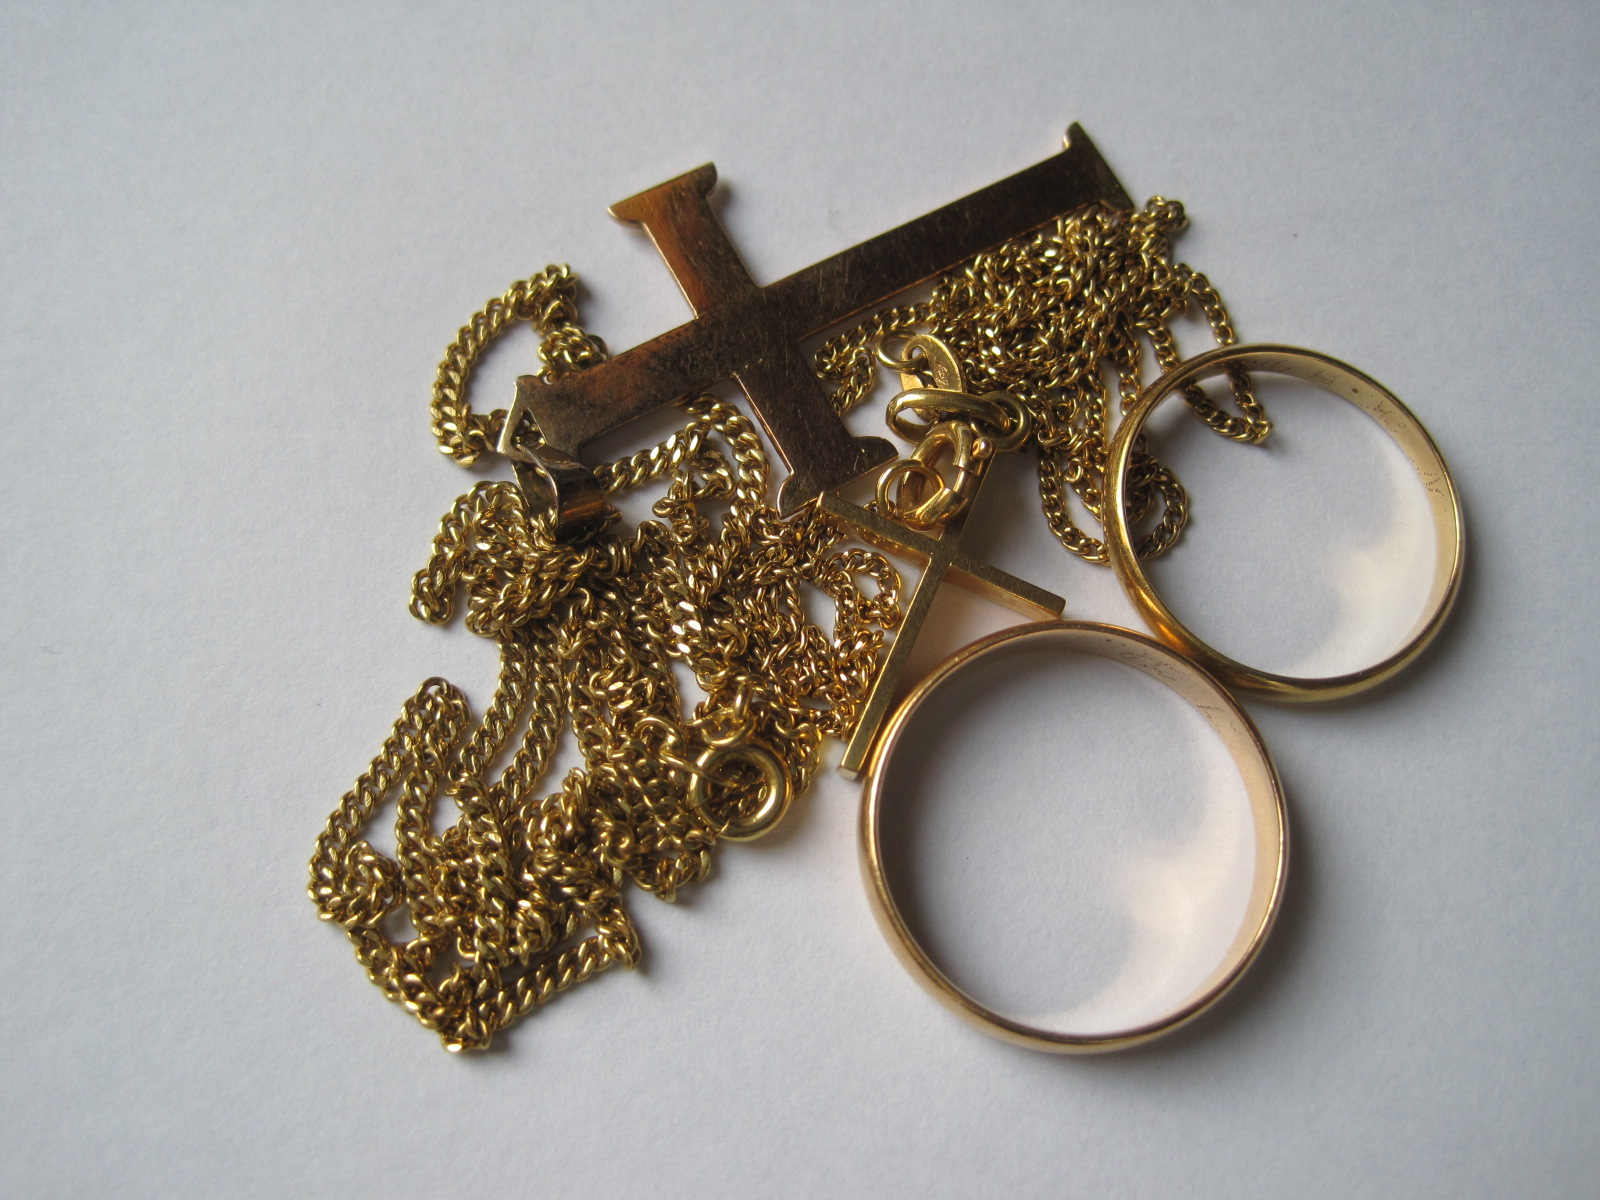 Lot 40 - Set of 2 gold chains with cross and 2 gold wedding rings - Net weight: 14 g - - [...]